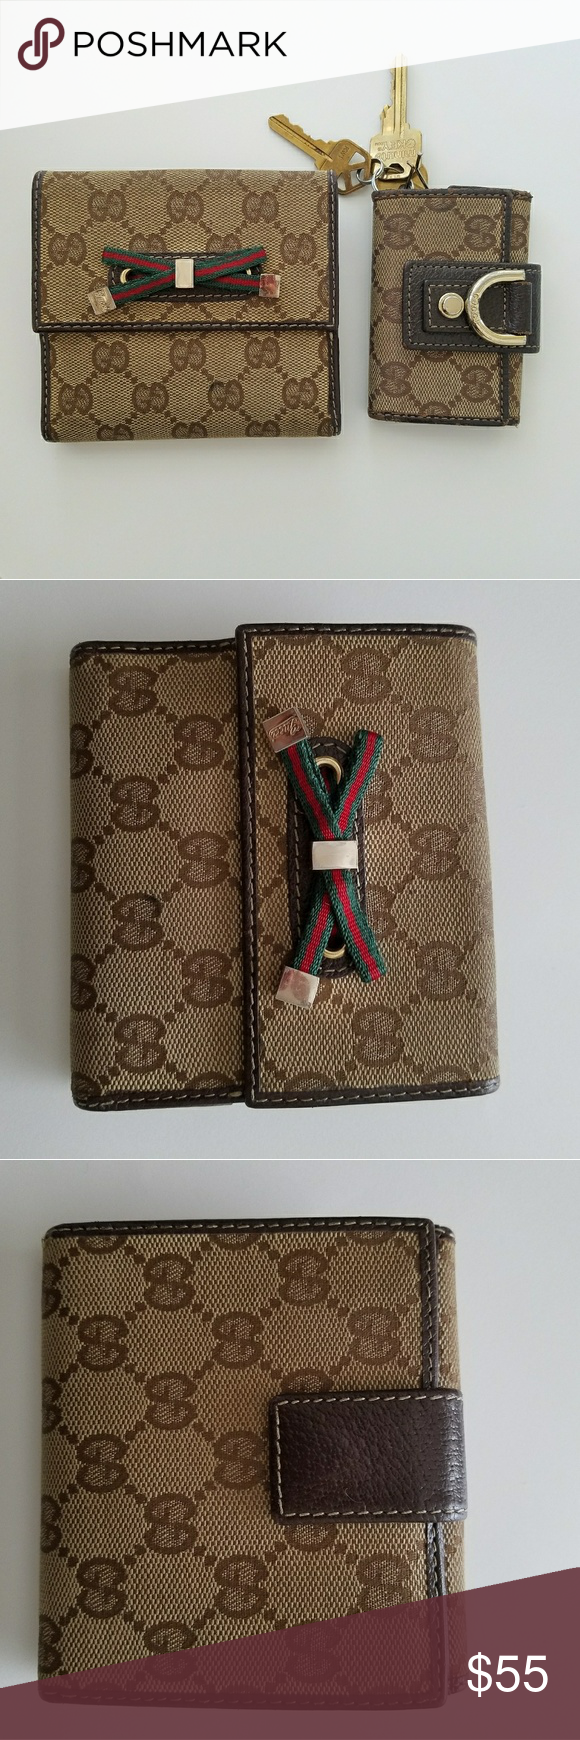 Gucci Wallet set with key wallet A set of vintage Gucci GG